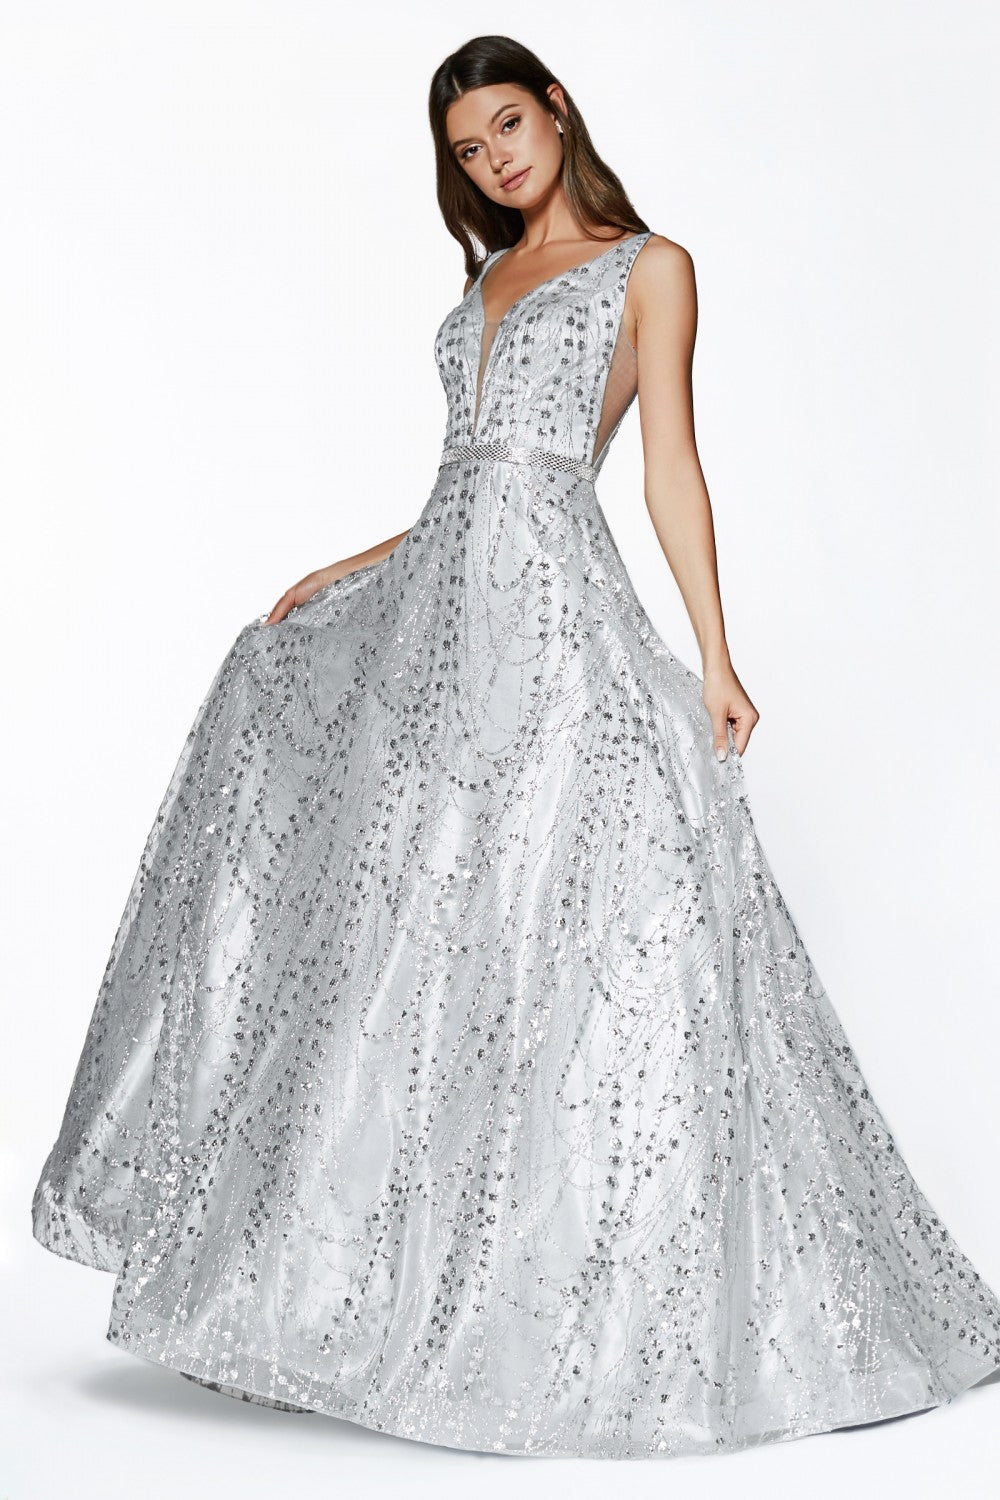 Mariposa Prom Gown Ballgown with Metallic Accents Prom Dress C-0028-Silver